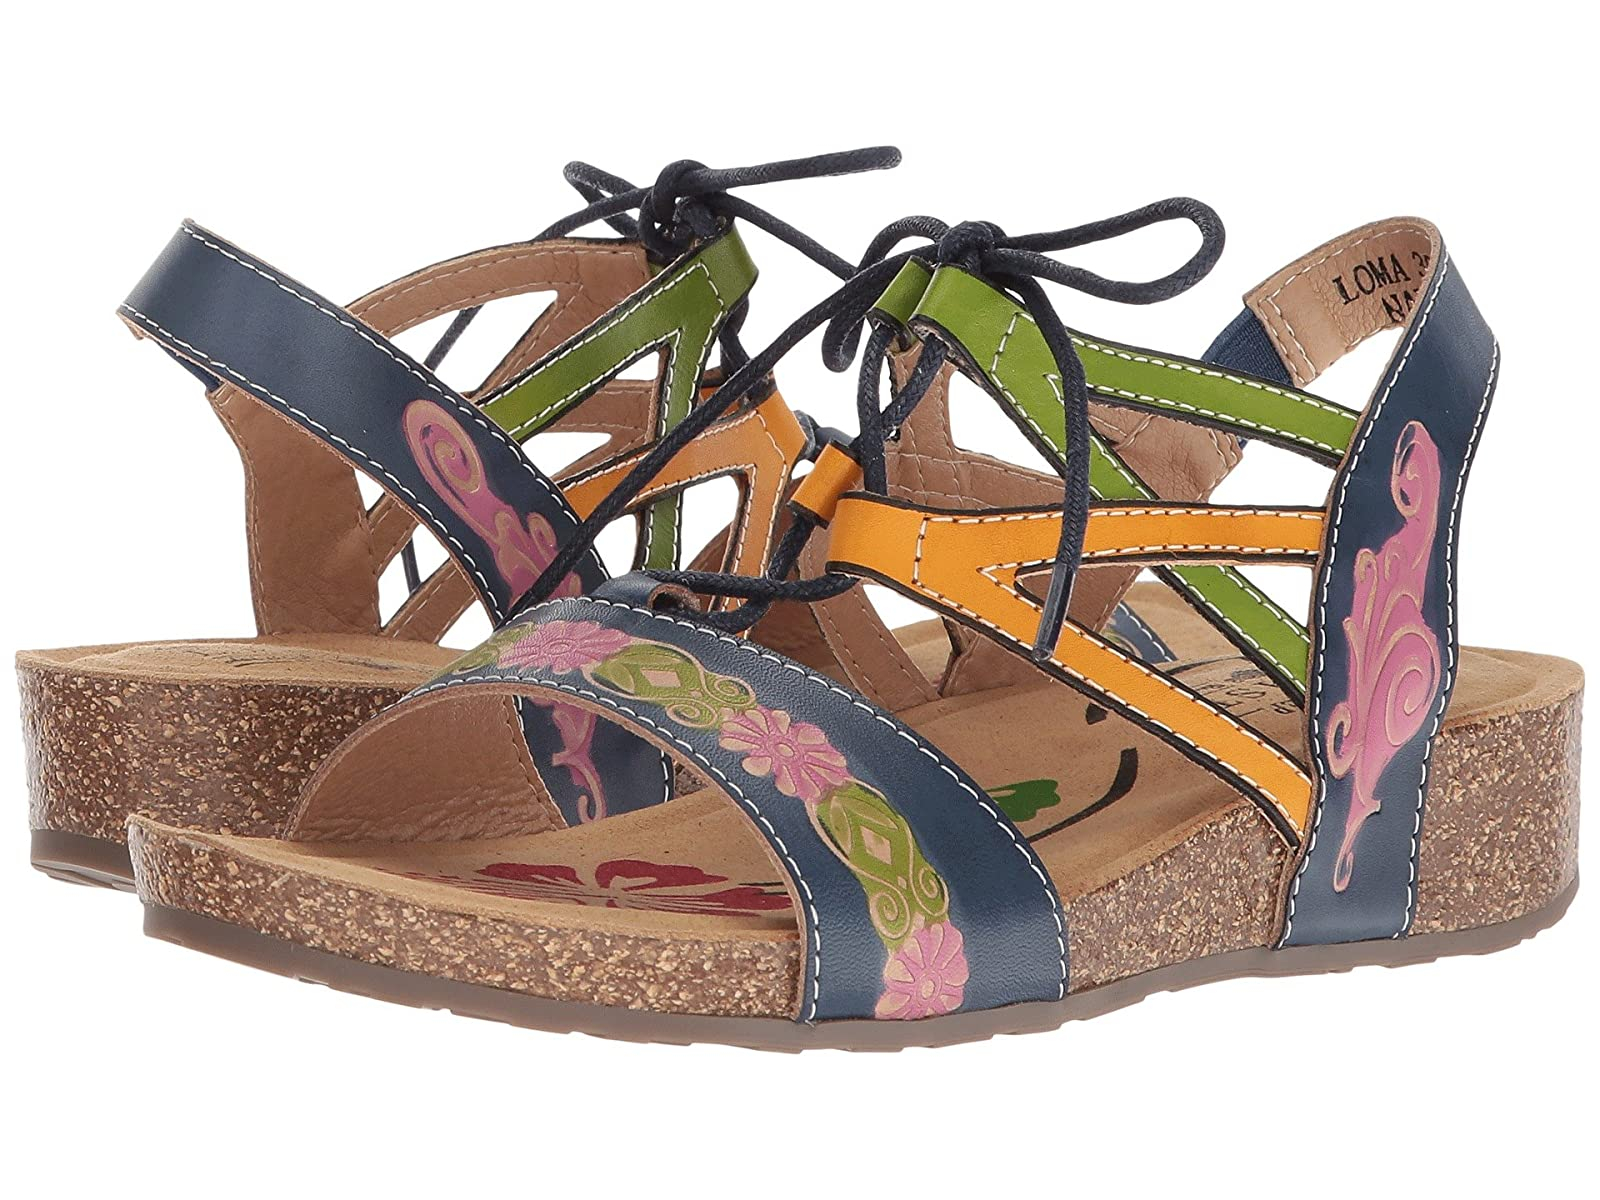 L'Artiste by Spring Step LomaAtmospheric grades have affordable shoes